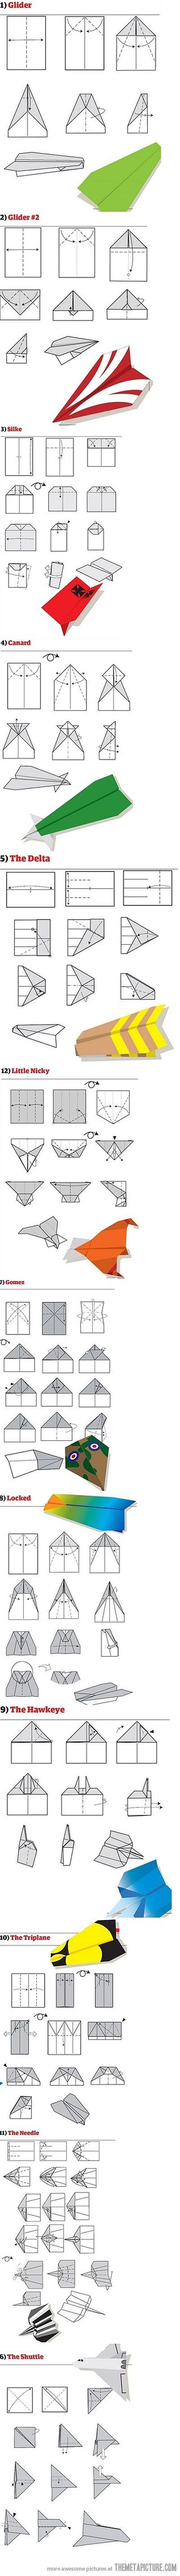 paper toy airplane